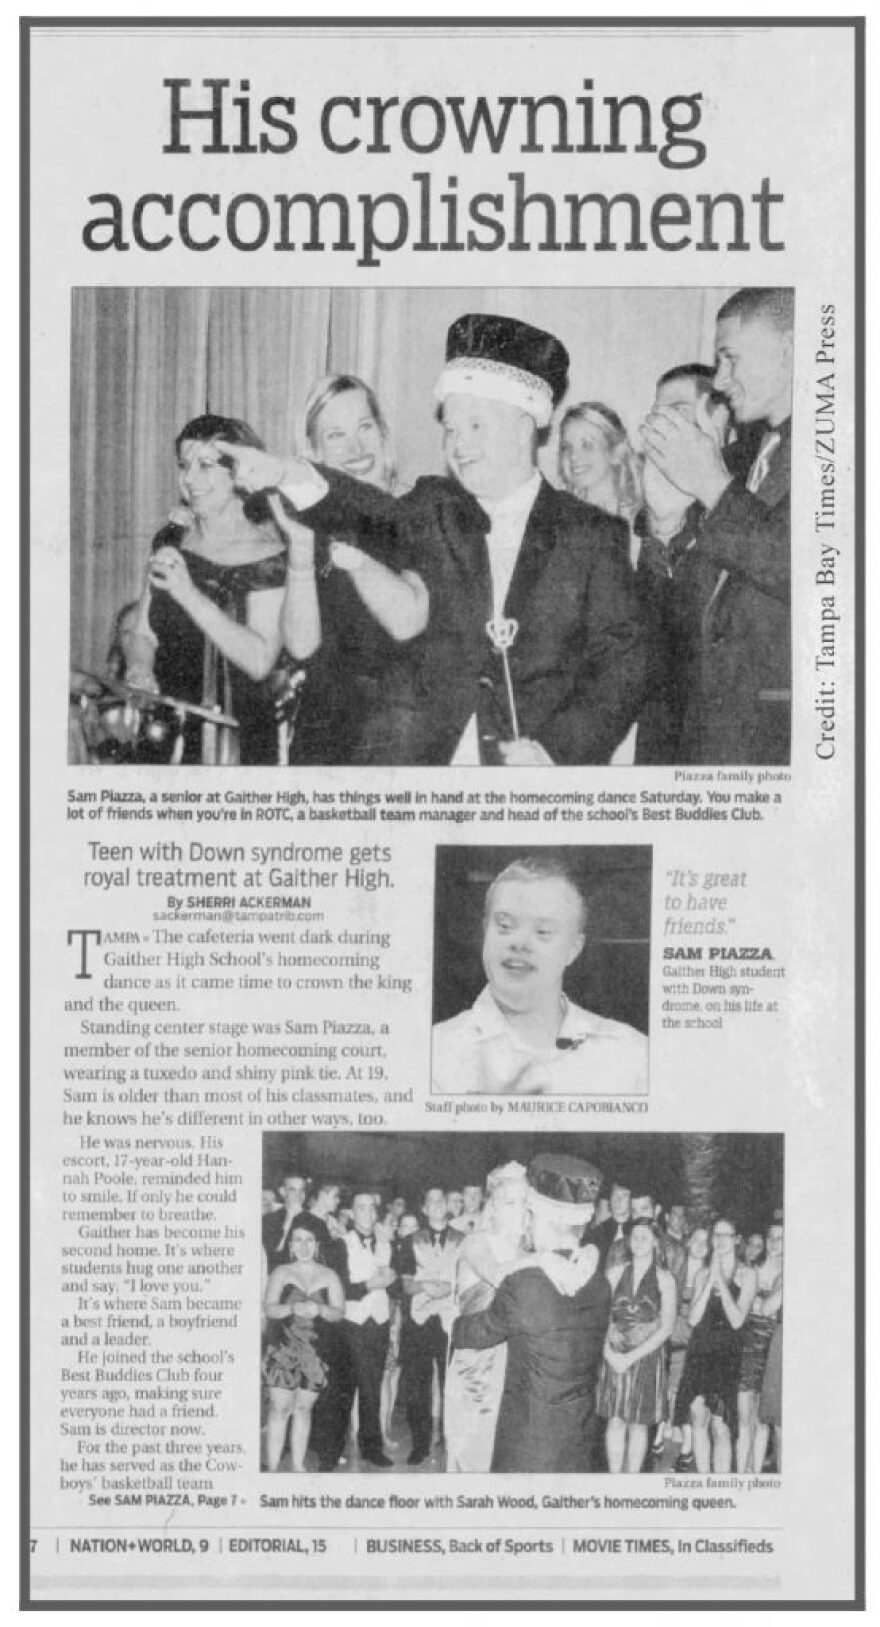 Newspaper coverage of Piazza winning Homecoming King.